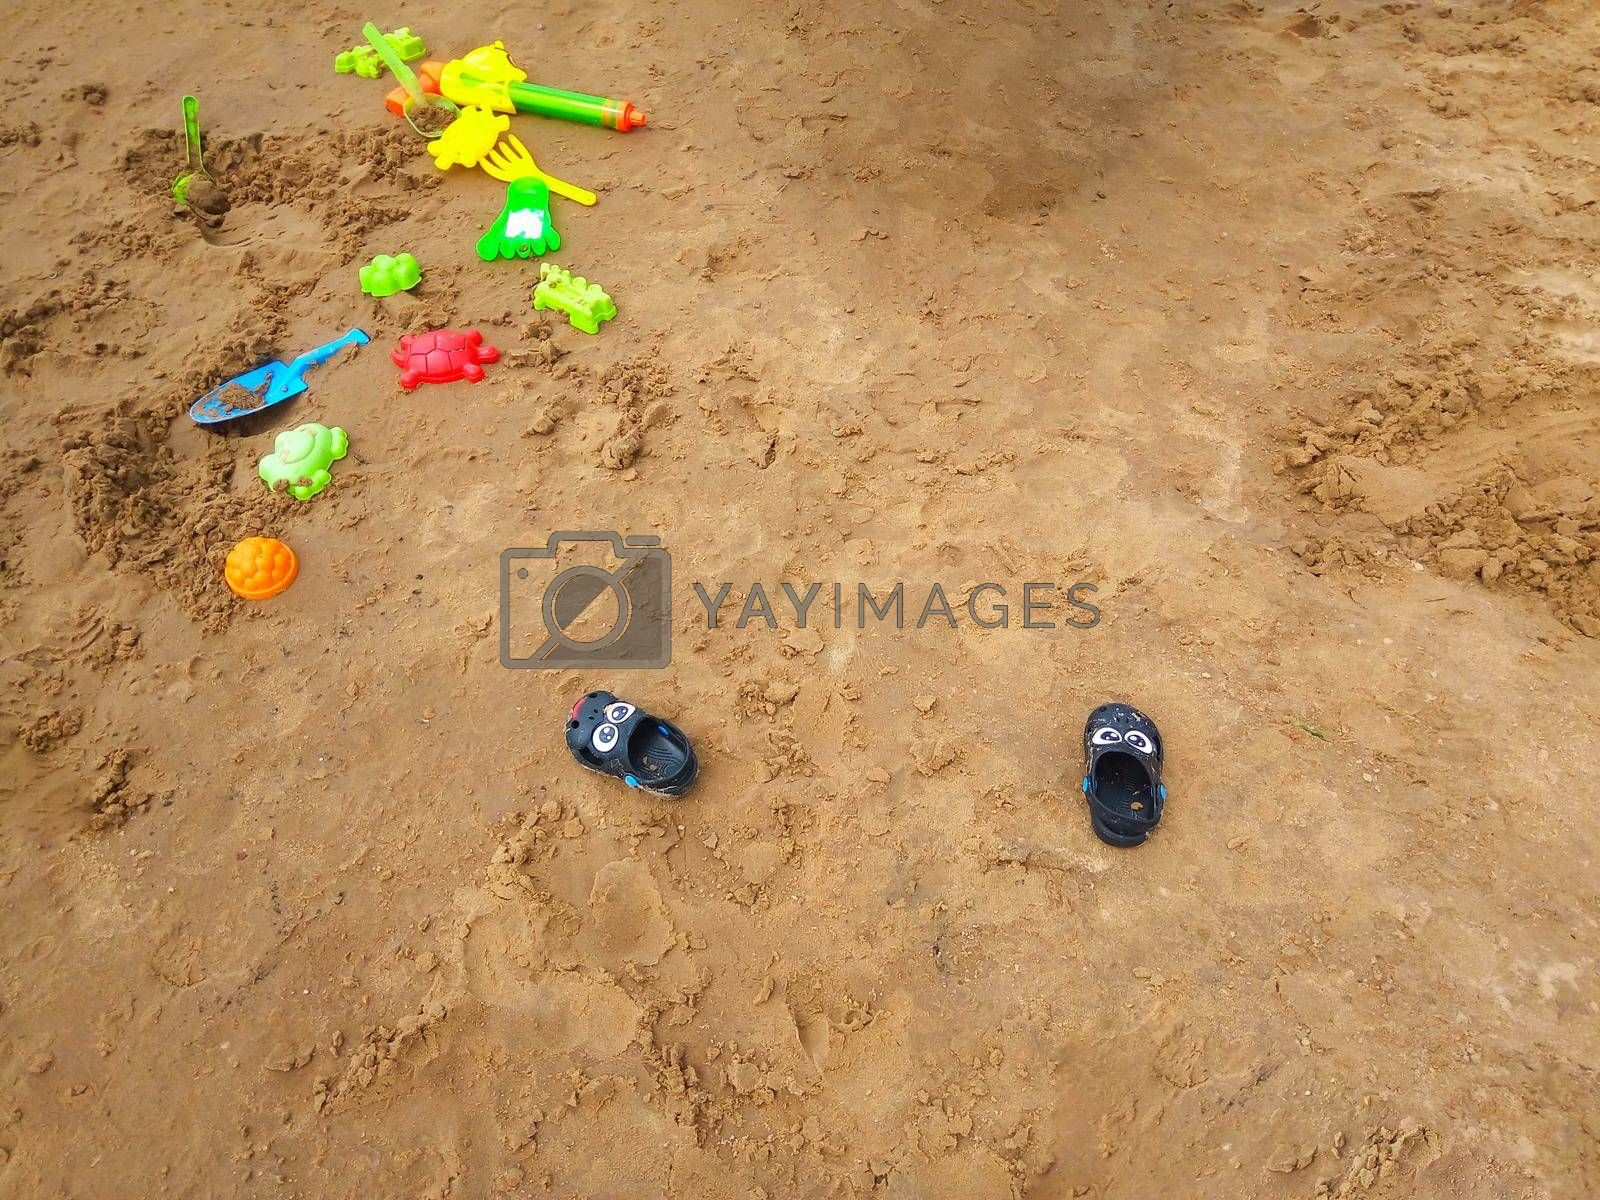 Concept of beach recreation for children. Bright plastic children's toys in the sand. Top view. Space for text.